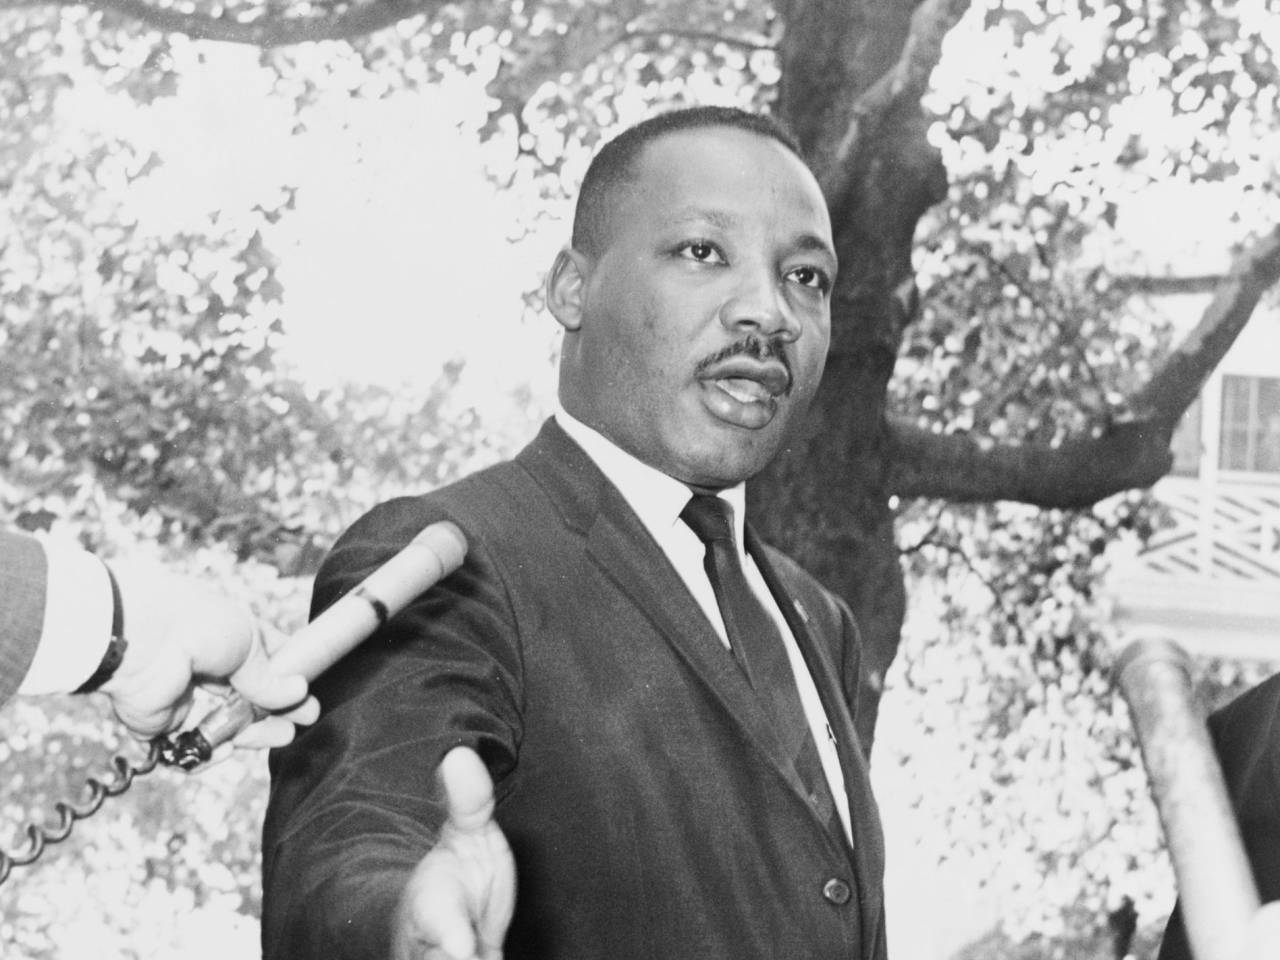 8 things you probably didn't know about Martin Luther King Jr. - Salon.com